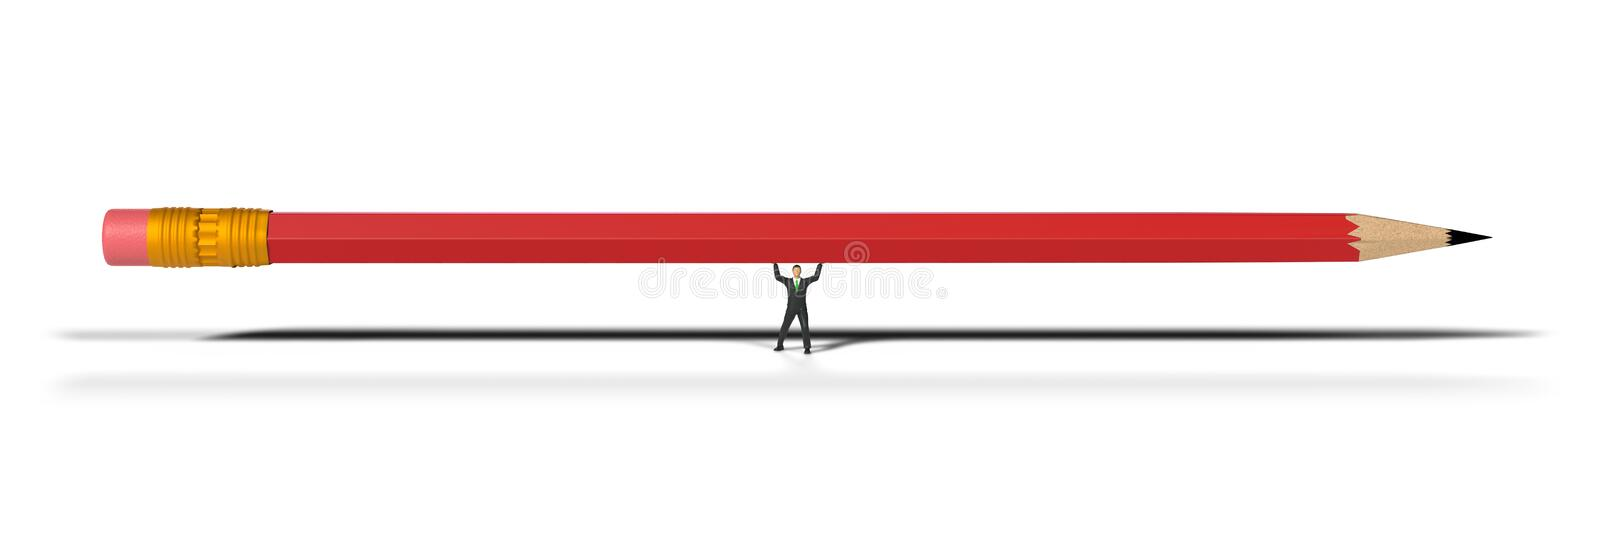 Toy miniature businessman figure lifting a red pencil, concept isolated on white background royalty free stock photo